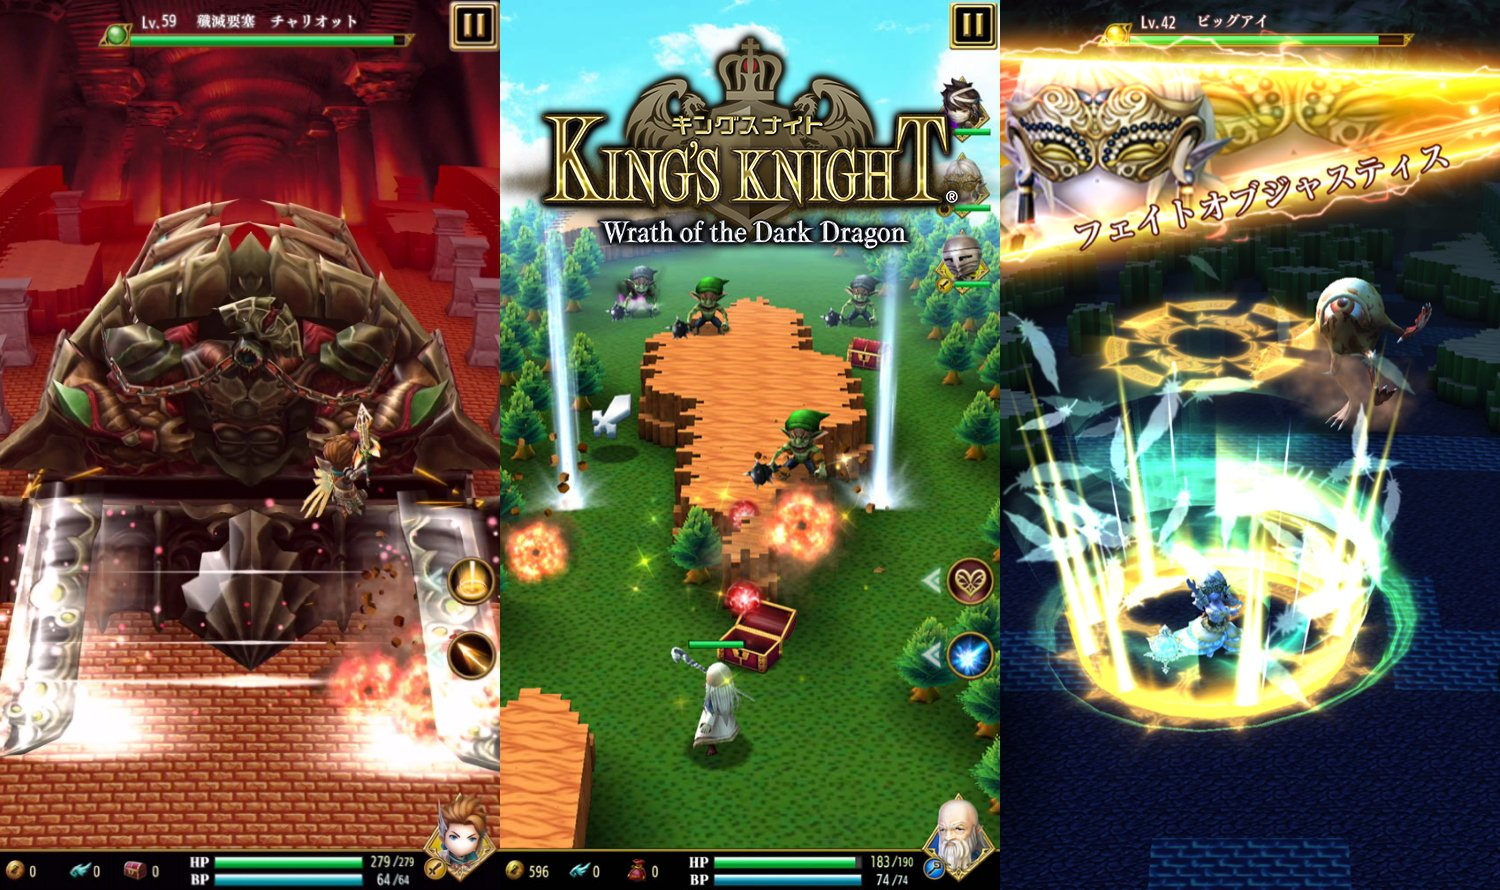 Kings-Knight-Wrath-of-the-Dark-Dragon-screenshots